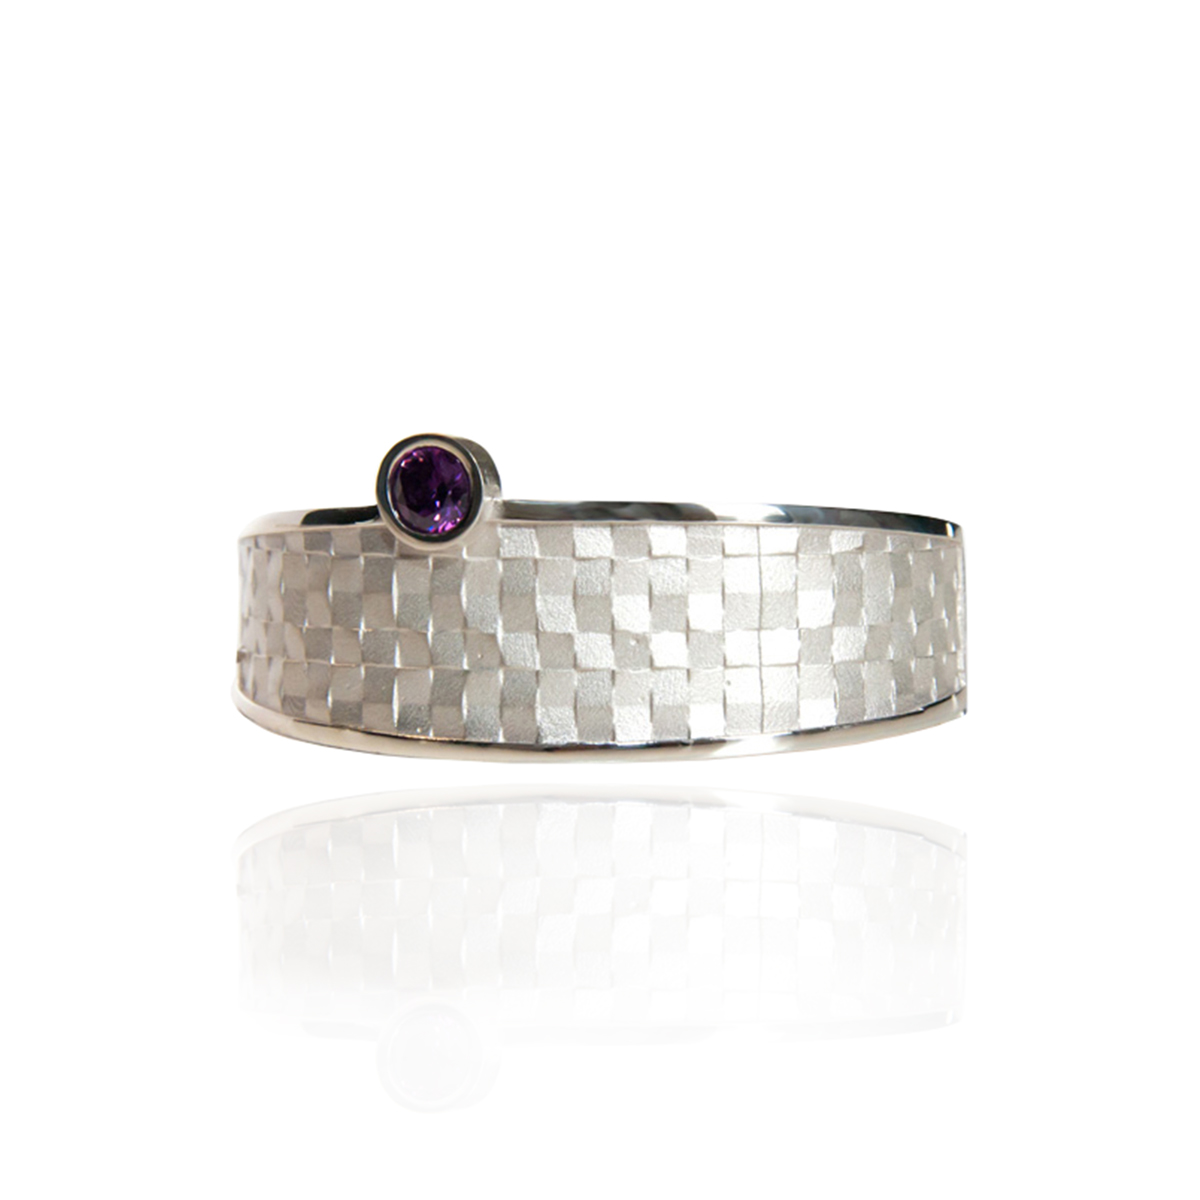 castle-rocks-and-jewelry-audar-weave-bracelet-with-stone-silver-E-1878